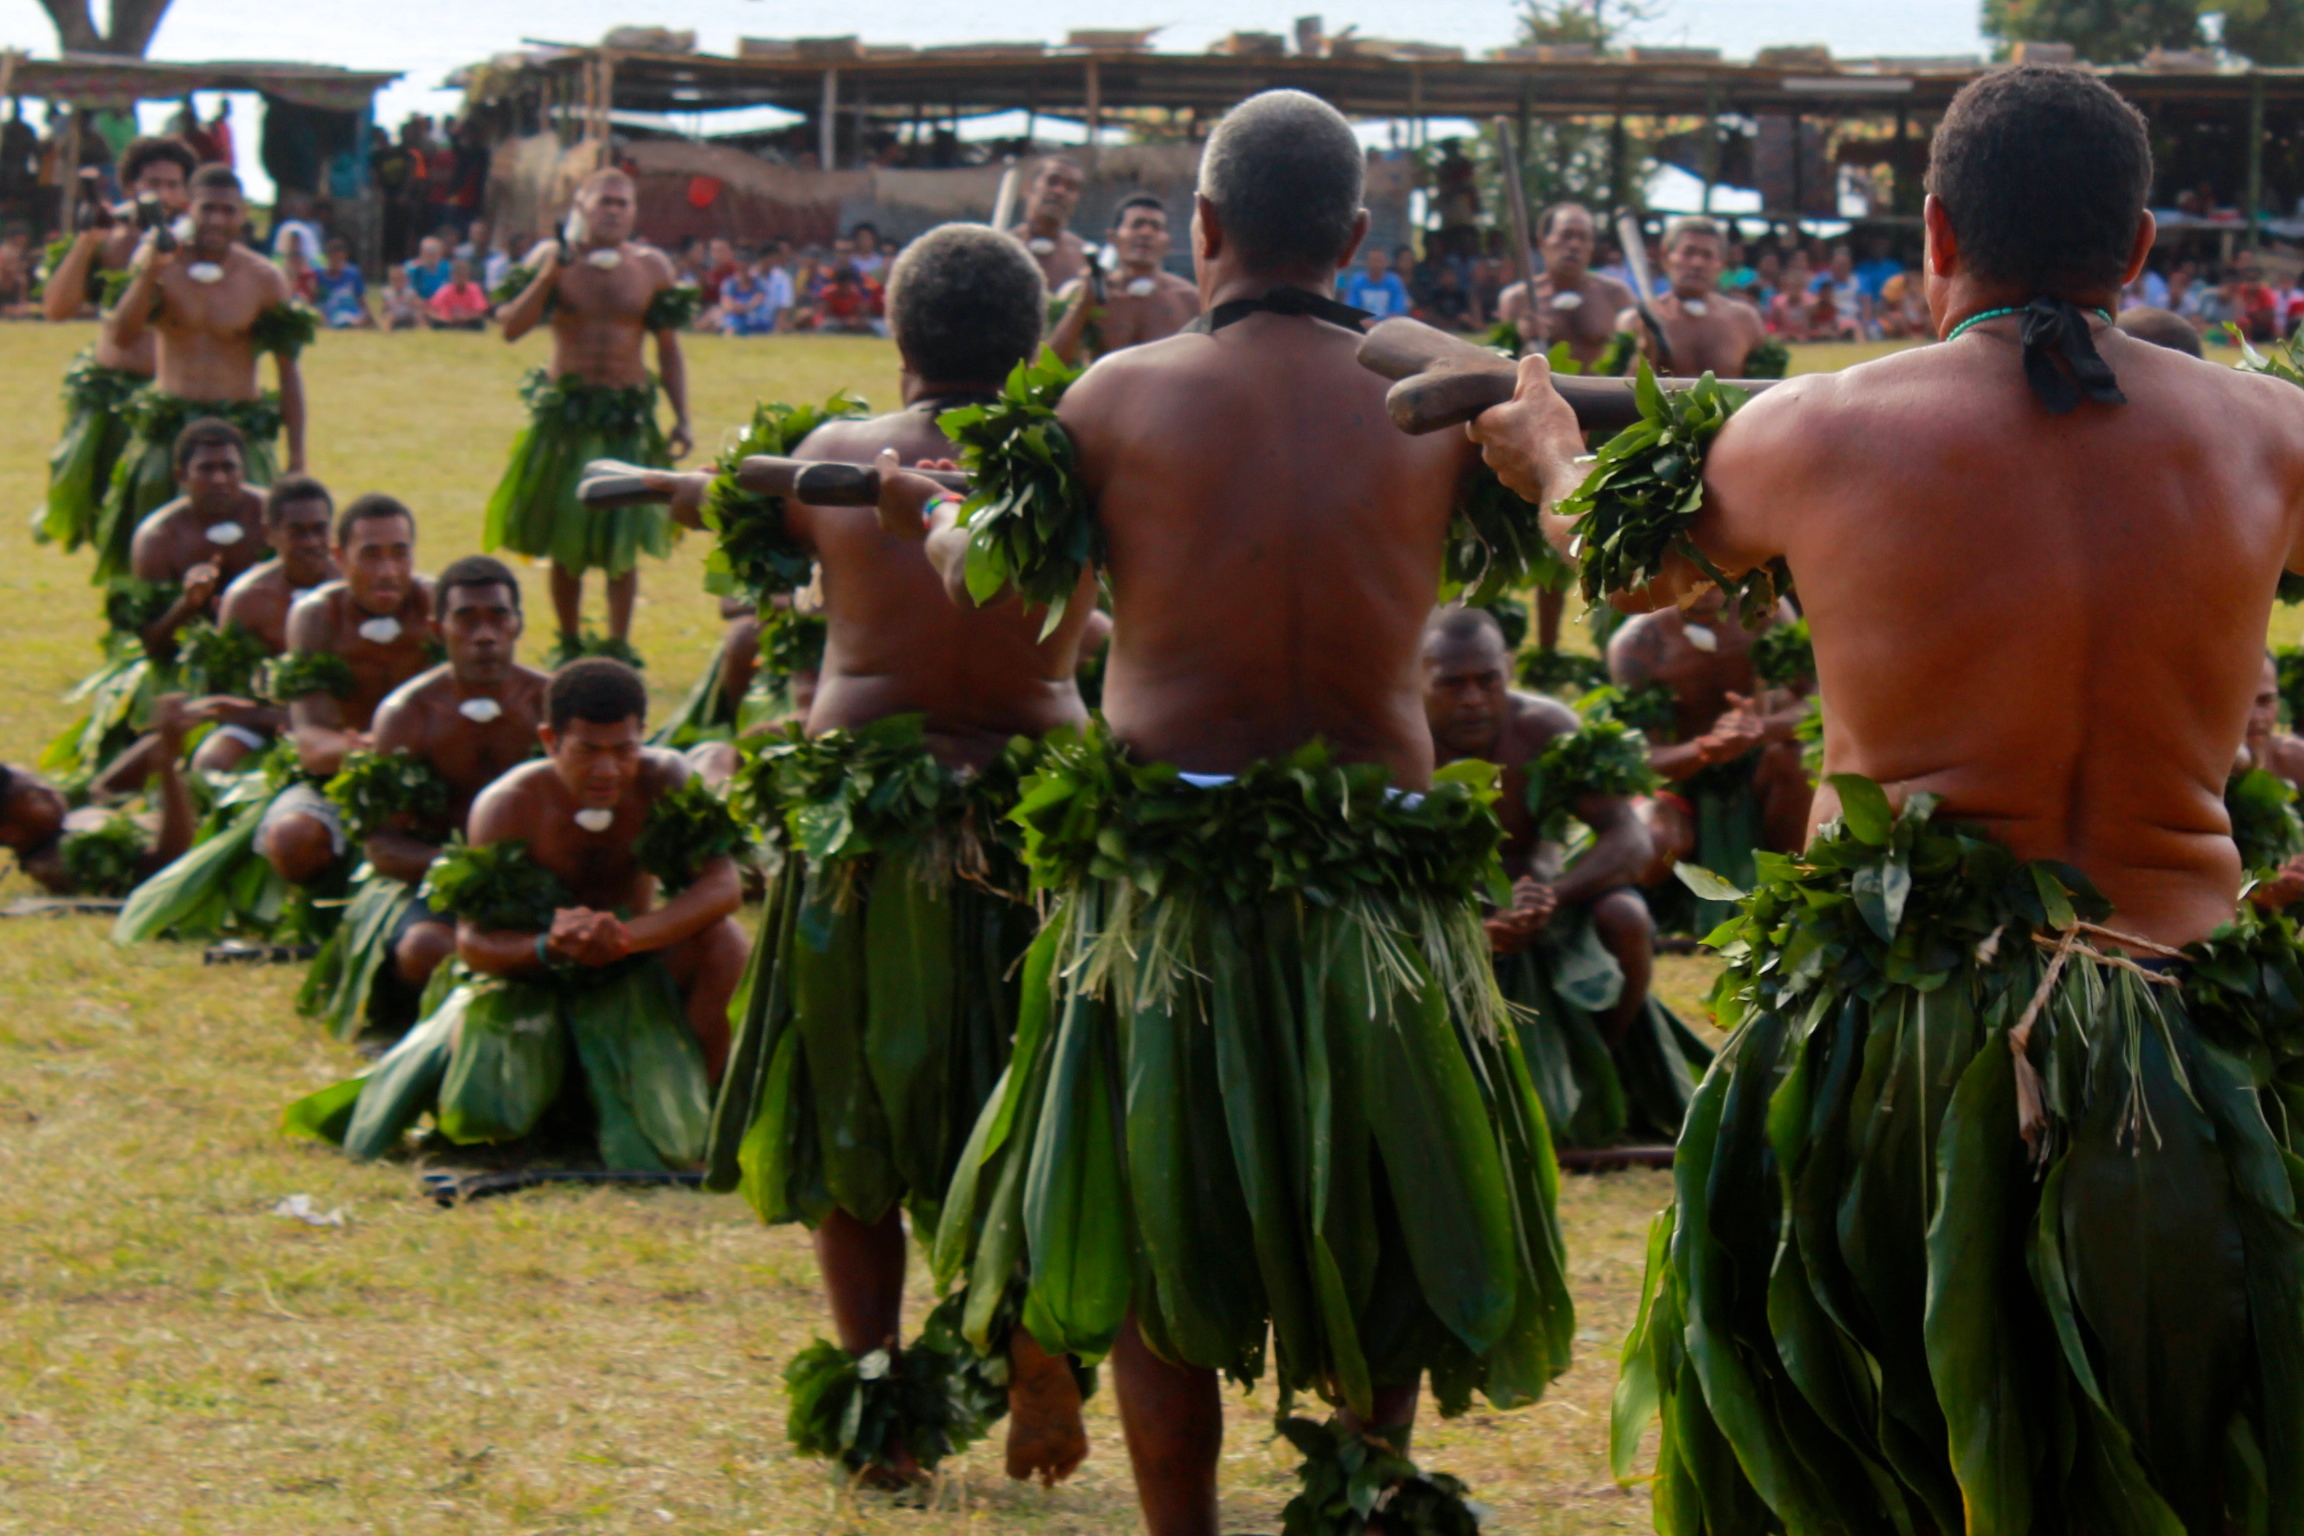 Celebrations in Wairiki, Taveuni, Fiji 2014